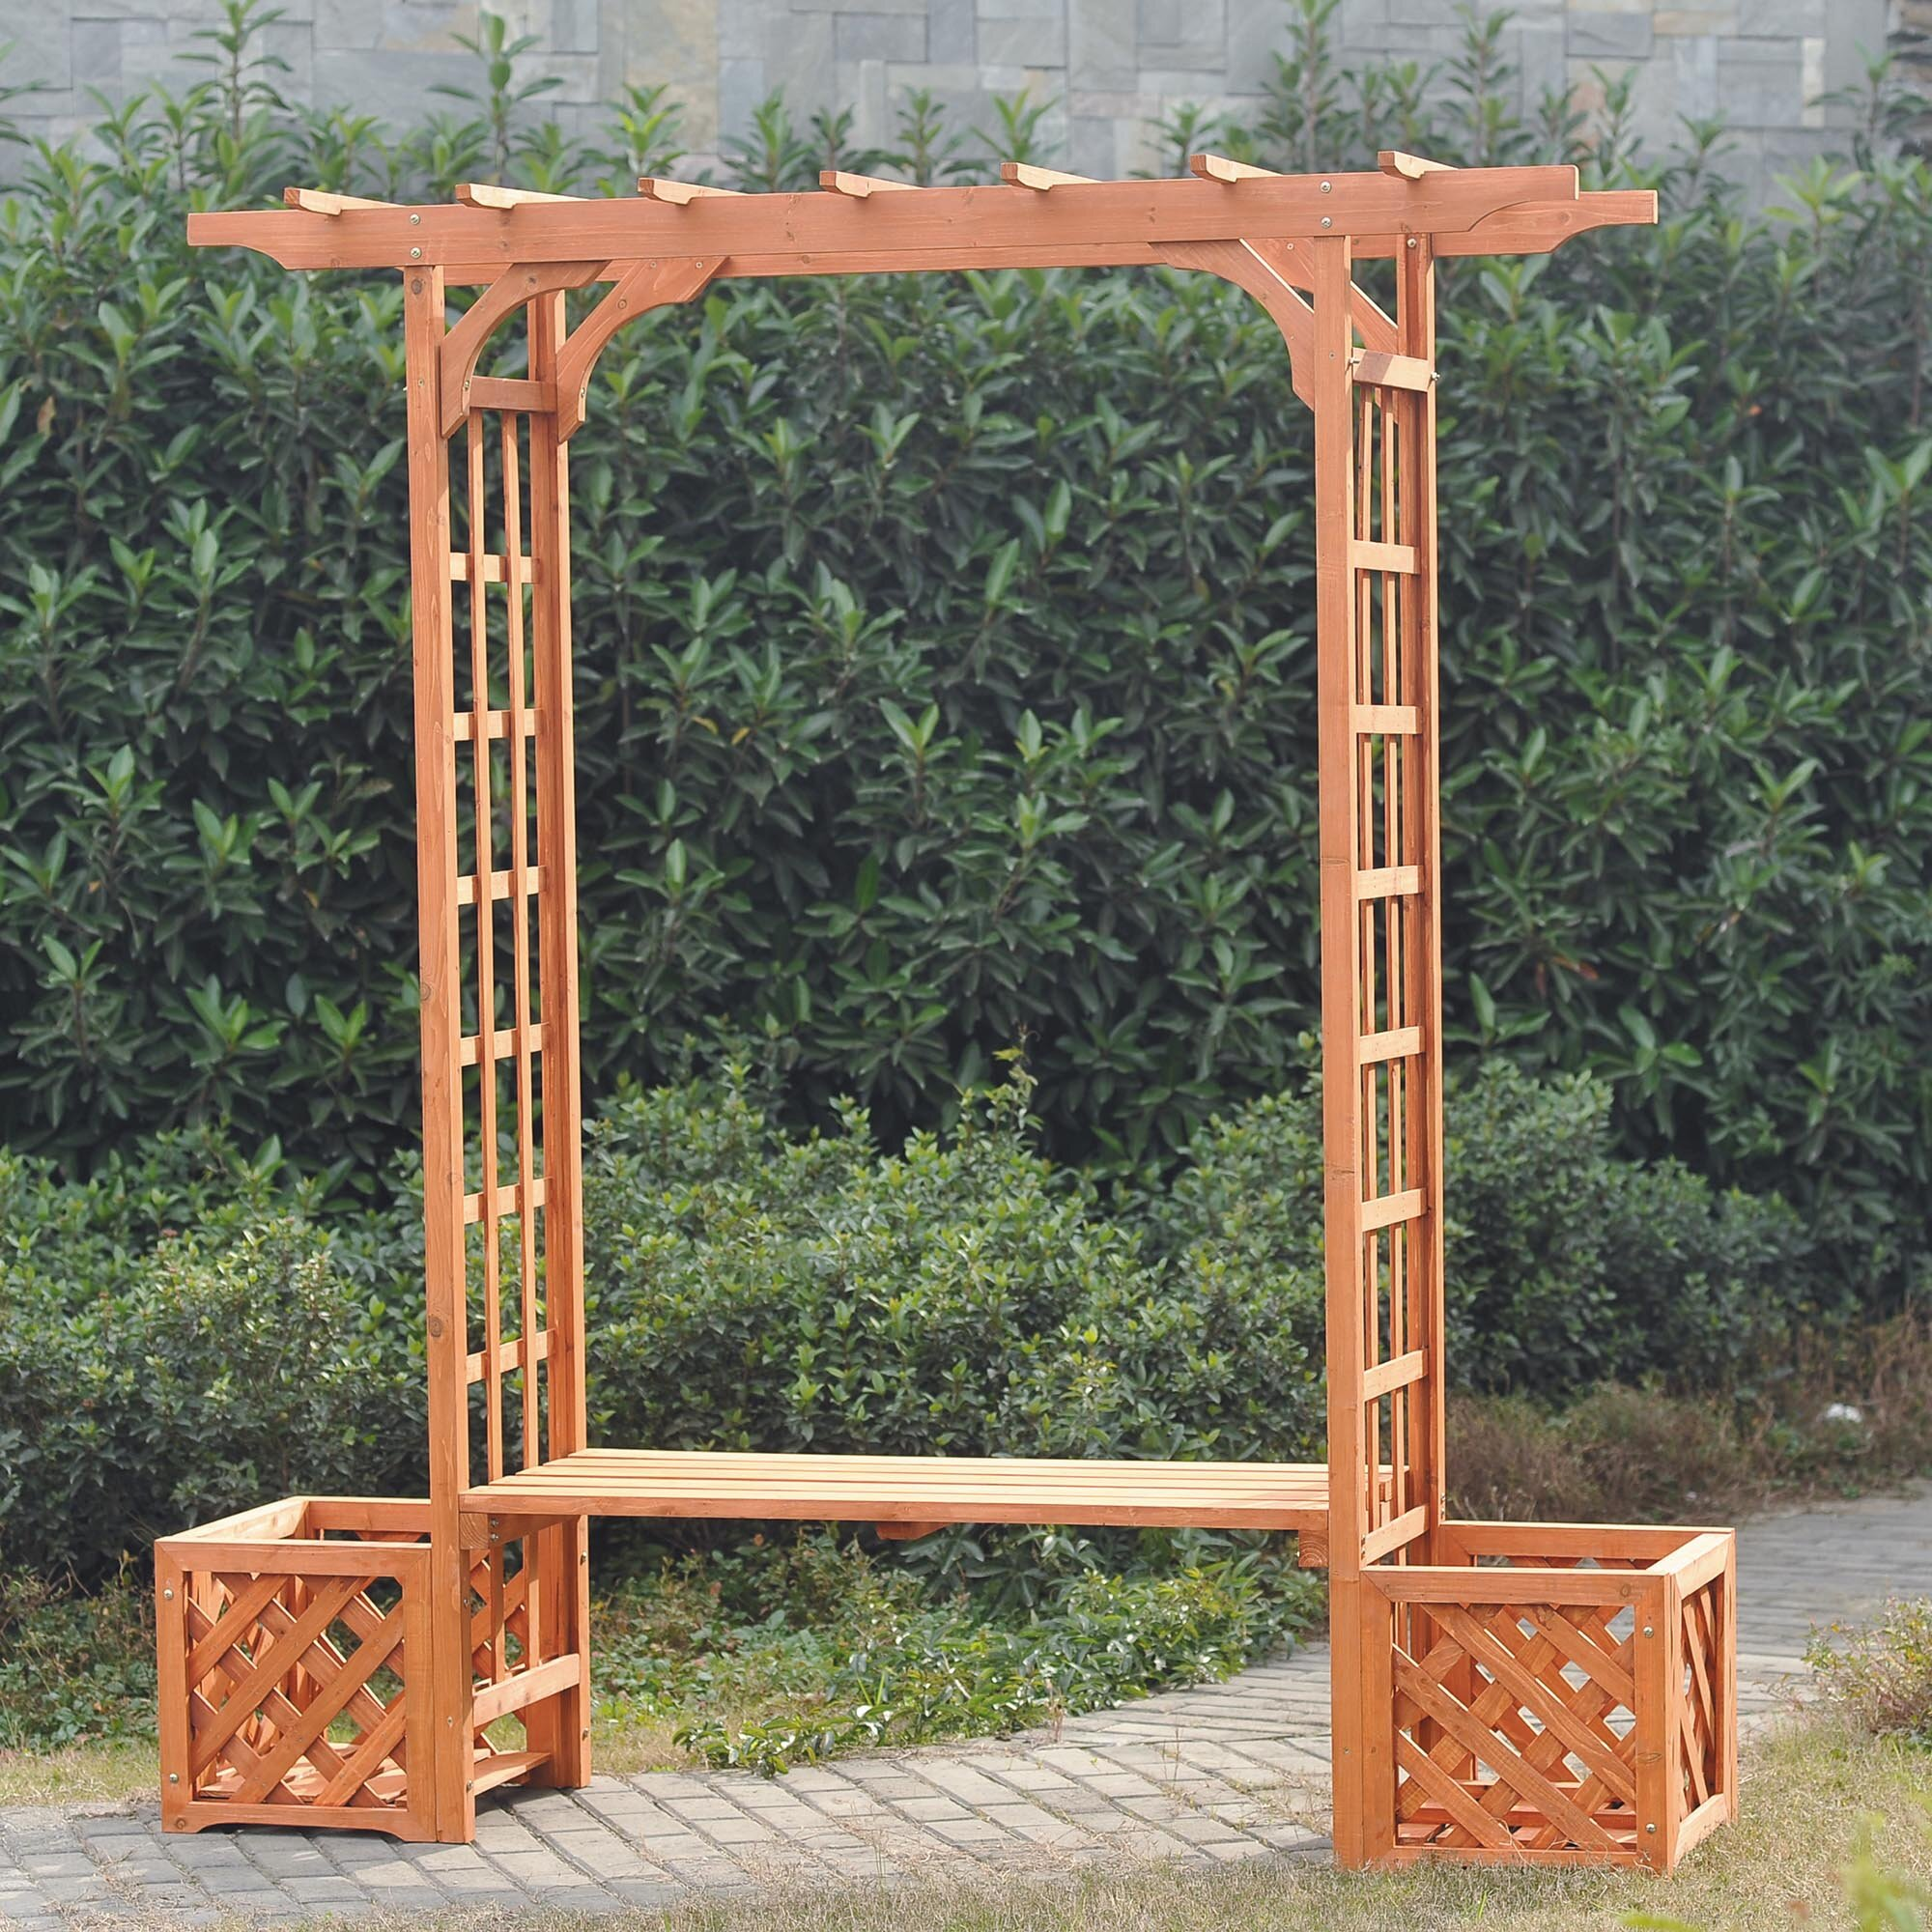 Phenomenal Trellis Arch Wood Arbor With Bench And Planter Pdpeps Interior Chair Design Pdpepsorg